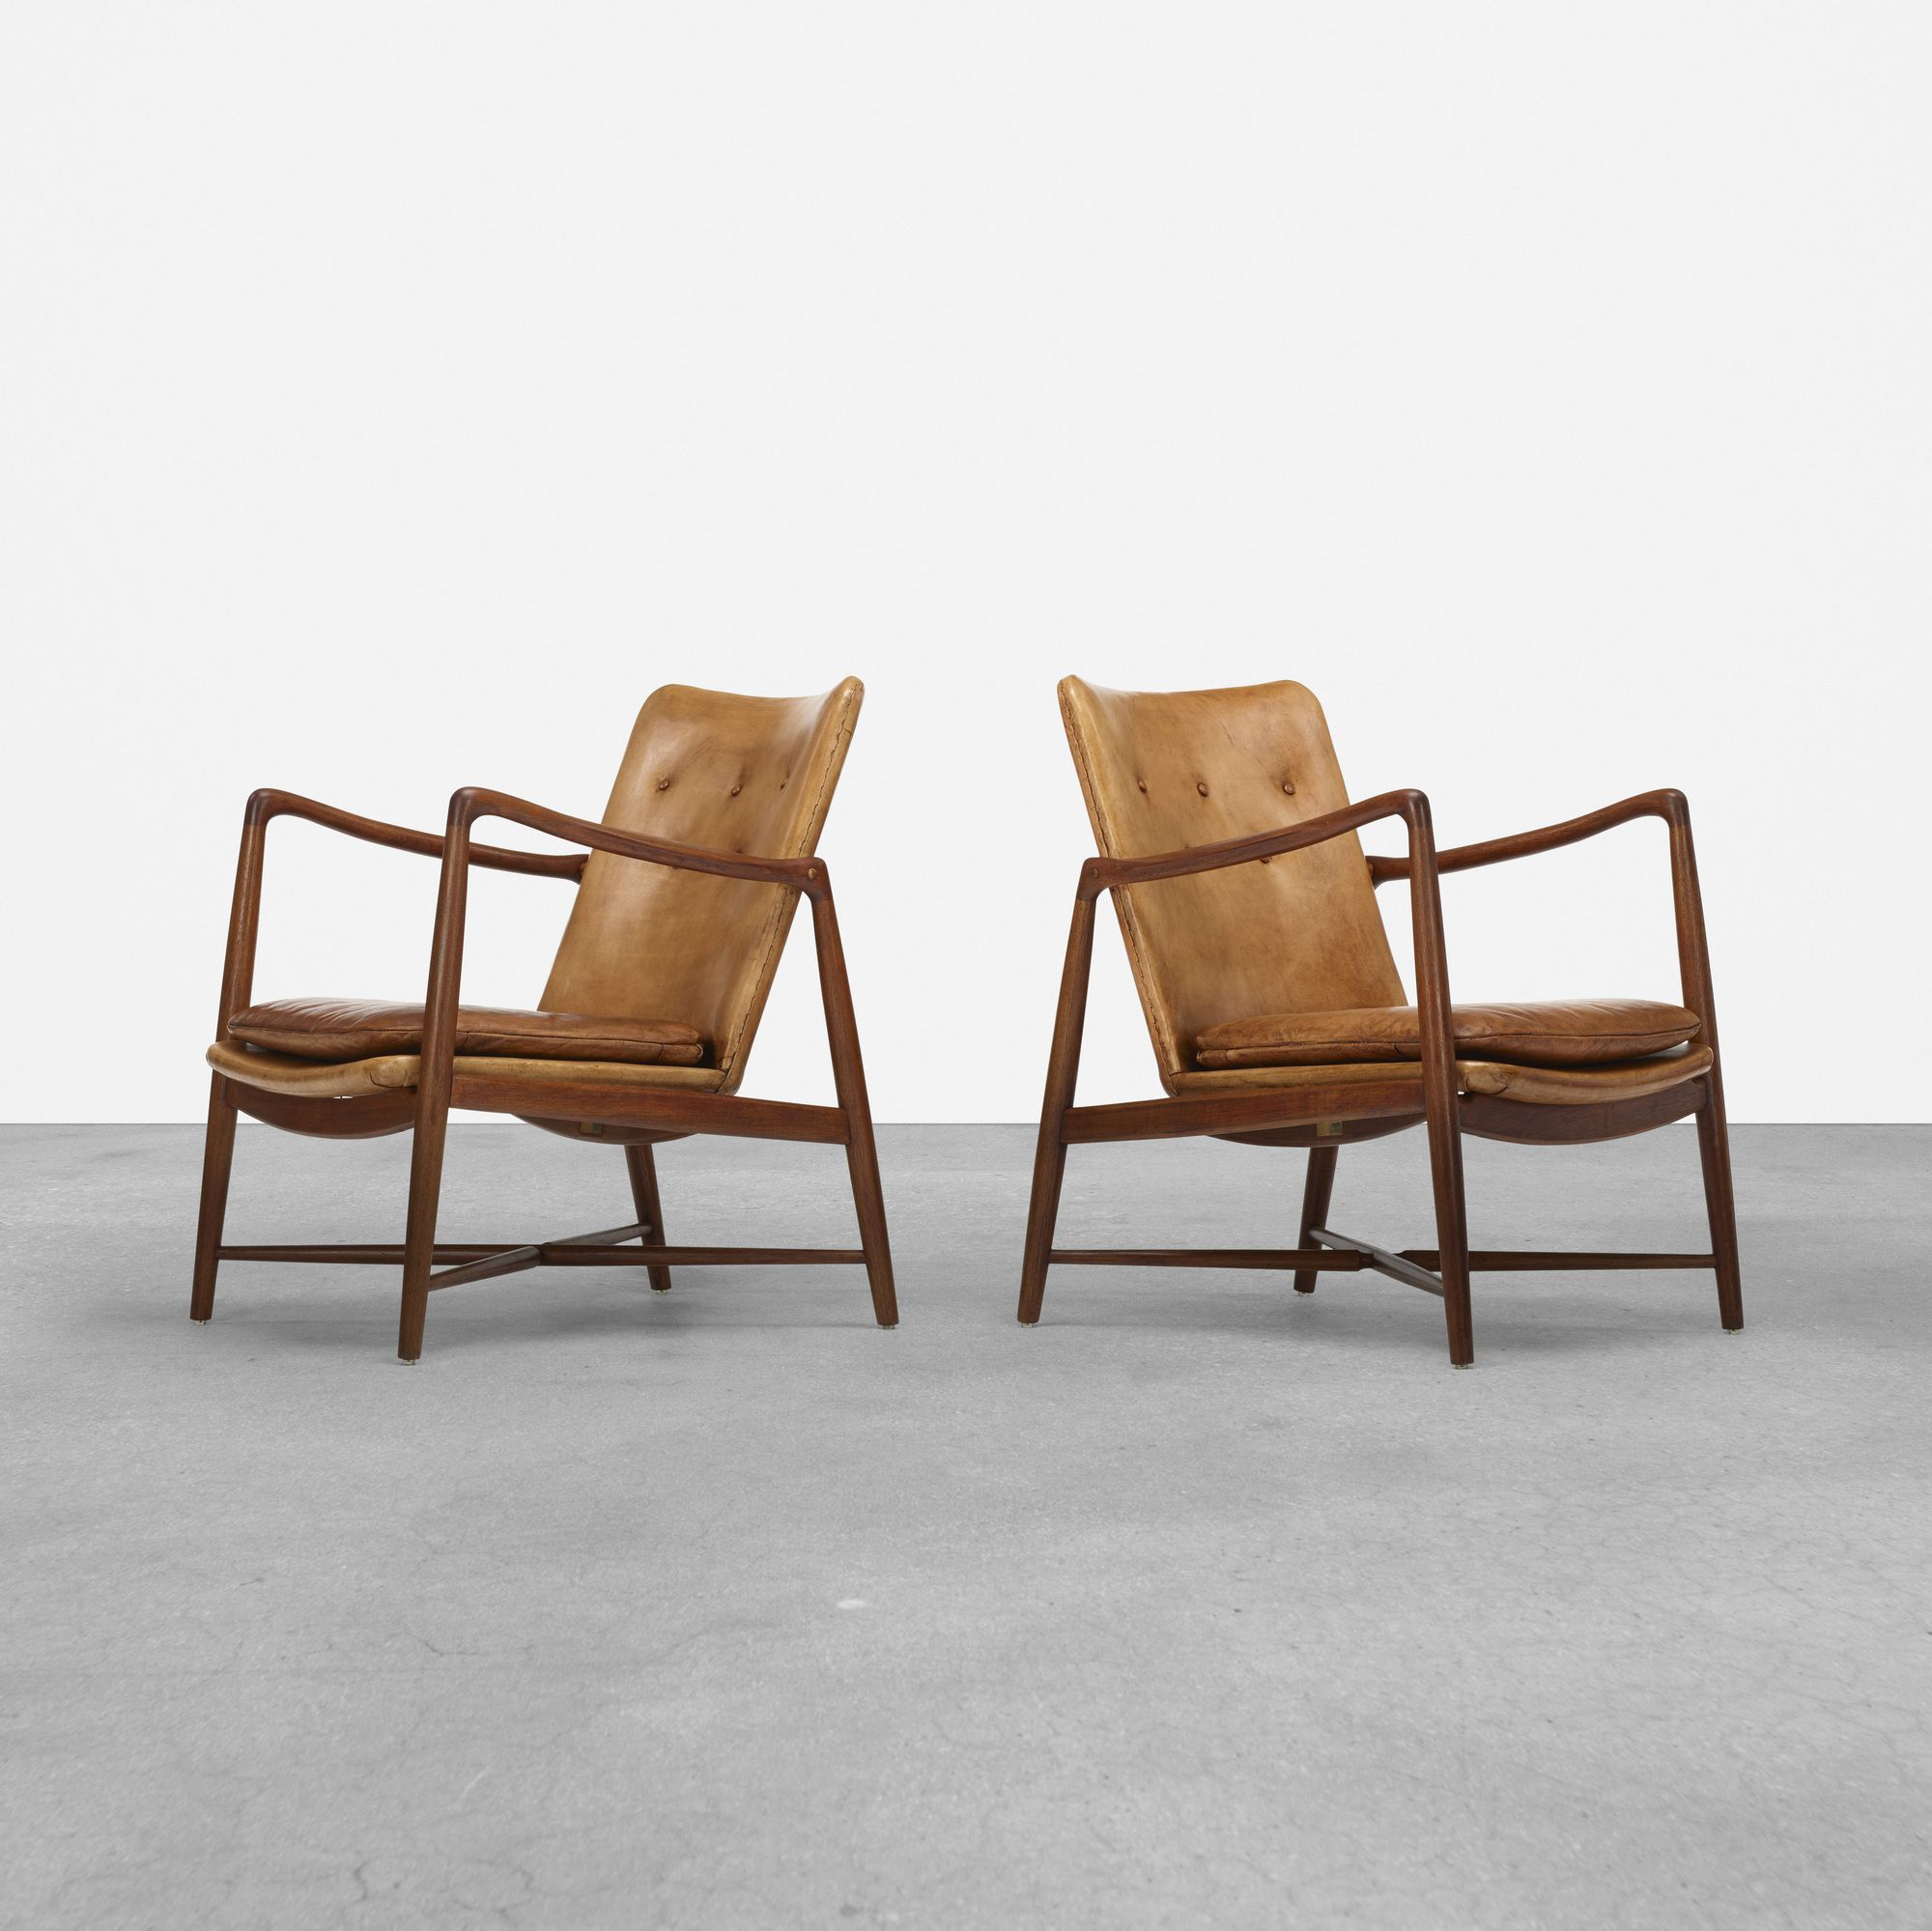 Danish Chair Plans Finn Juhl Bovirke Fireside Chairs Furniture And